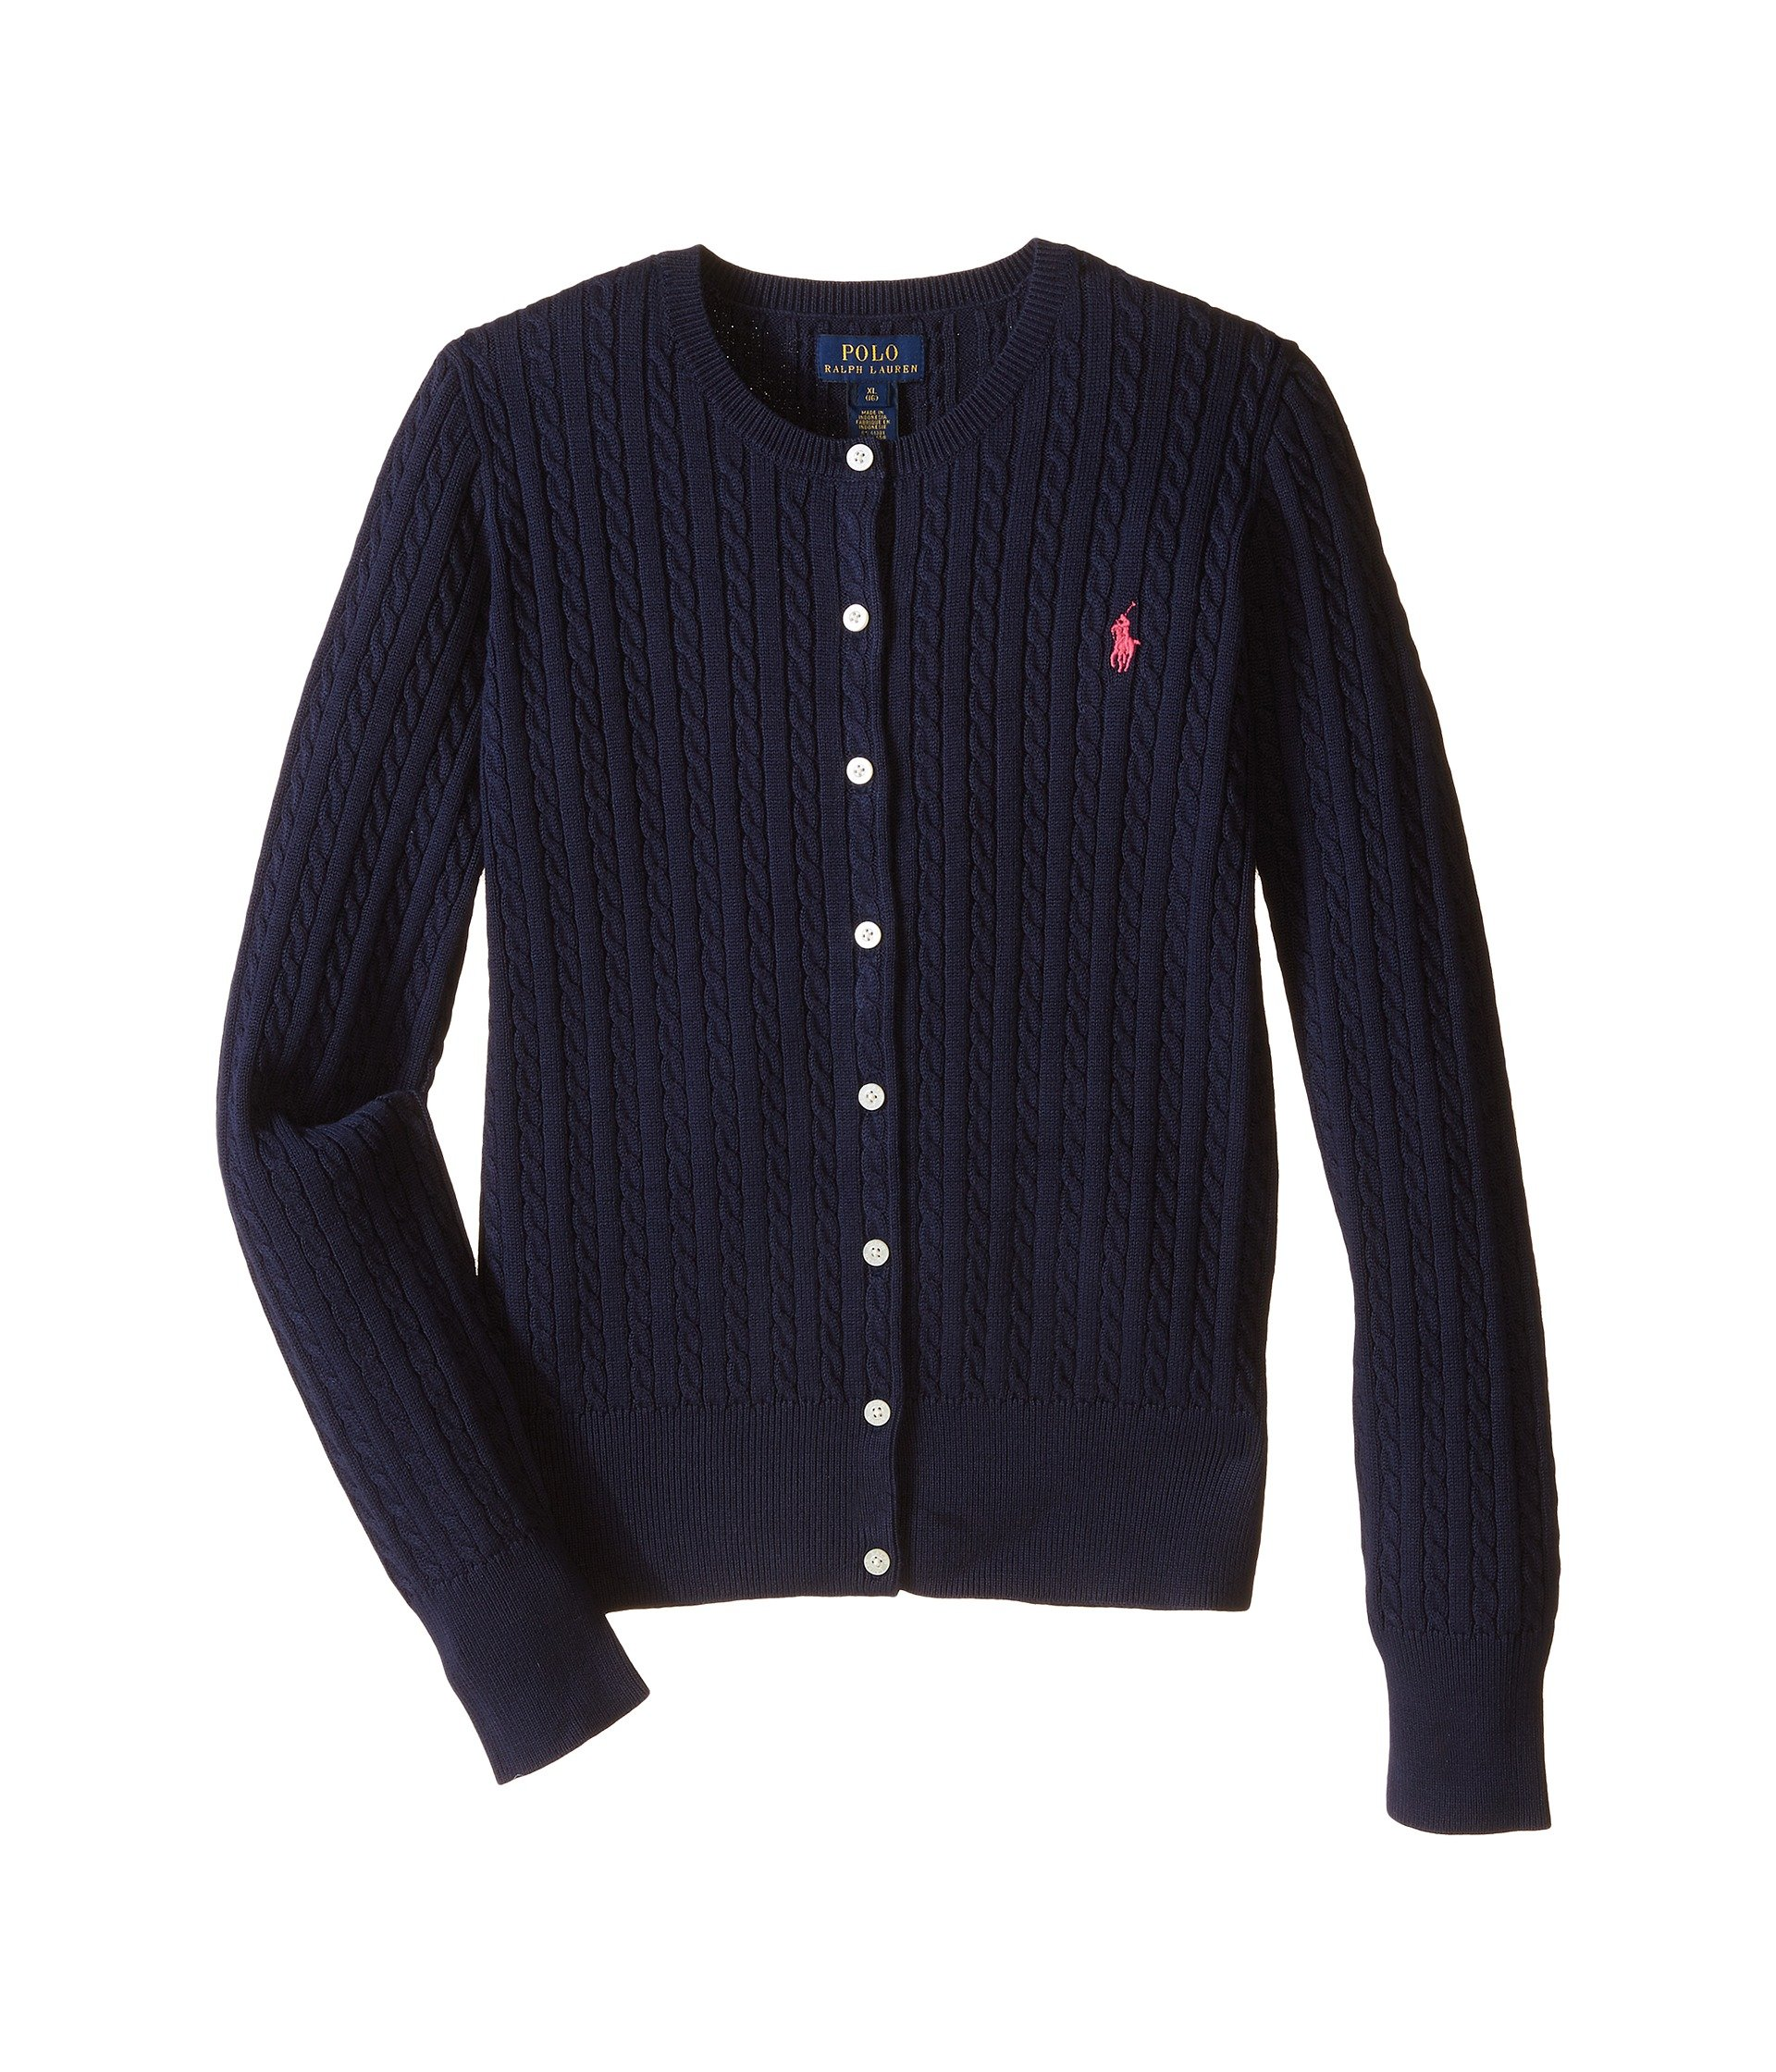 Ralph Lauren Polo Girls Cotton Knit Cable Cardigan Sweater (Small) by RALPH LAUREN (Image #1)